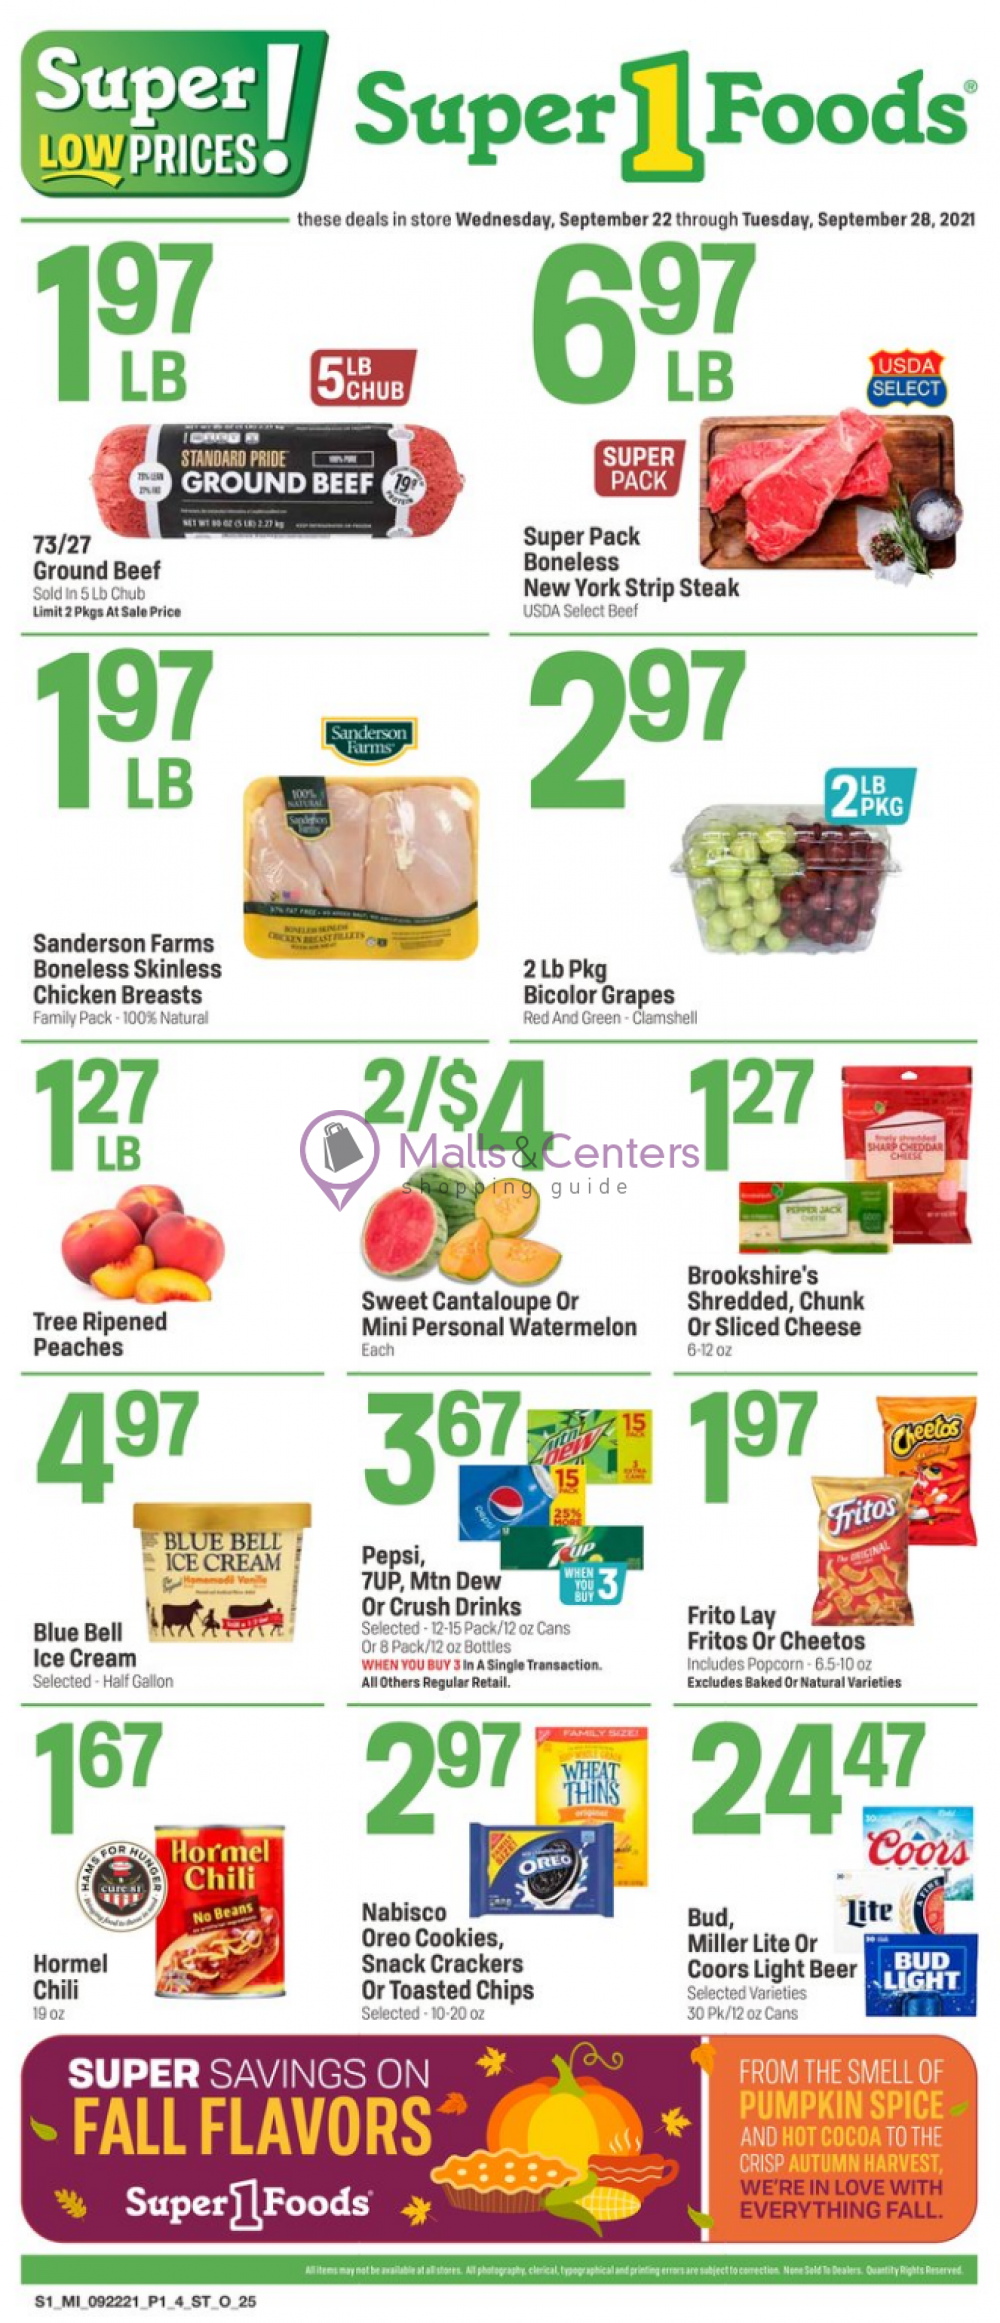 weekly ads Super1Foods - page 1 - mallscenters.com